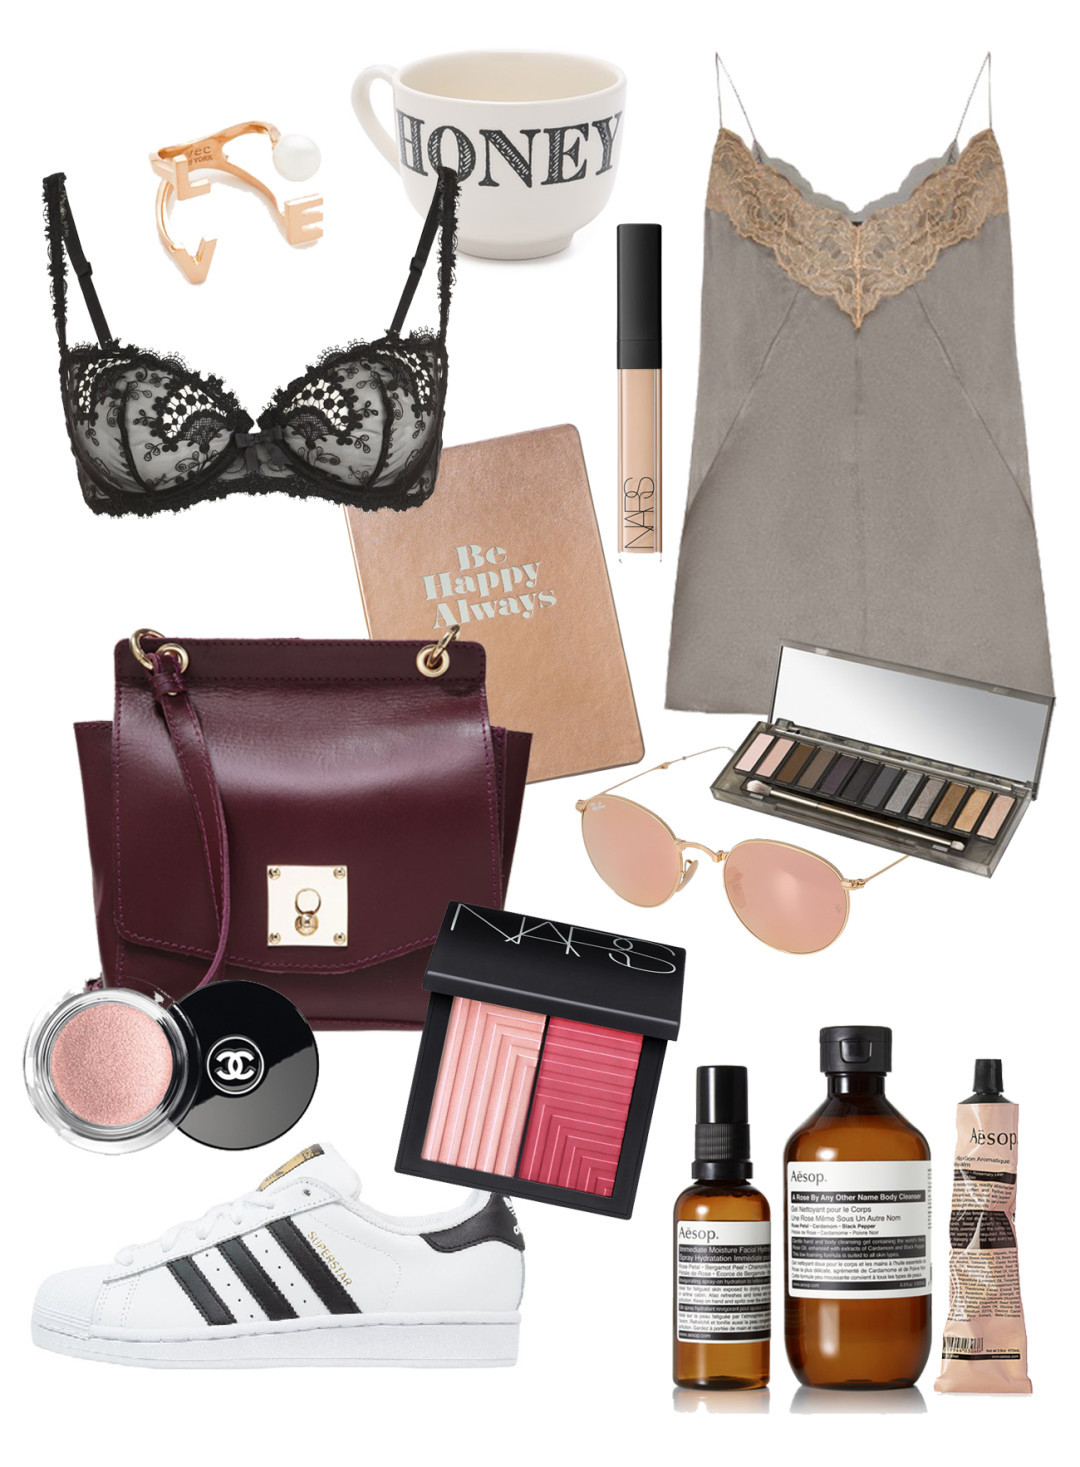 Valentine'S Day Gift Ideas For Her  Valentine s Day Gift Guide For Her & Him • The Fashion Cuisine